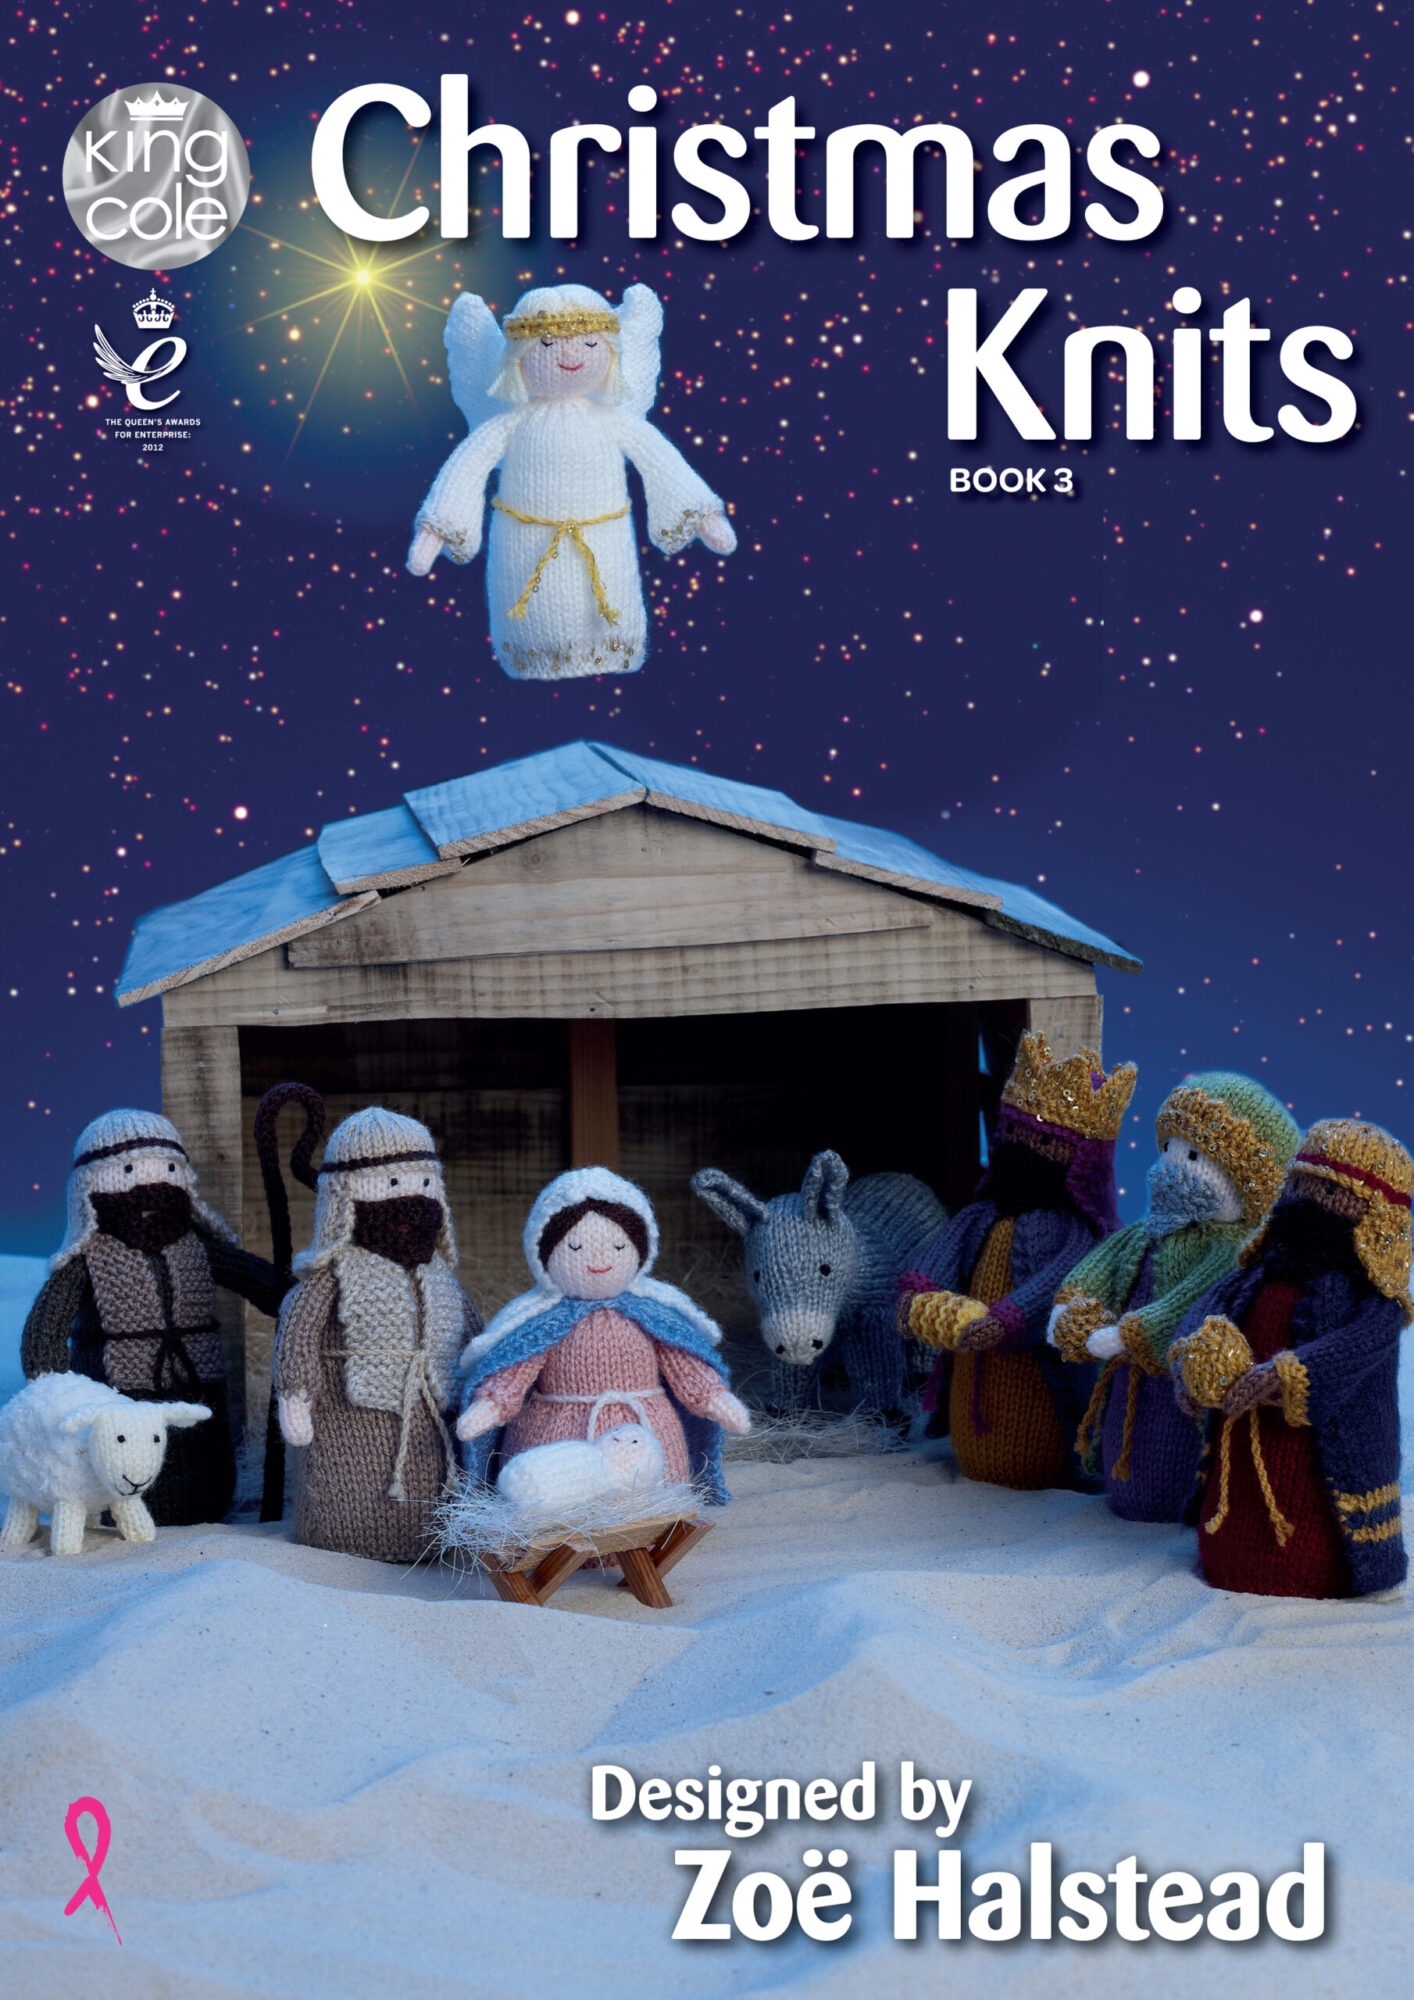 King Cole Christmas Knits – Book 3 product image